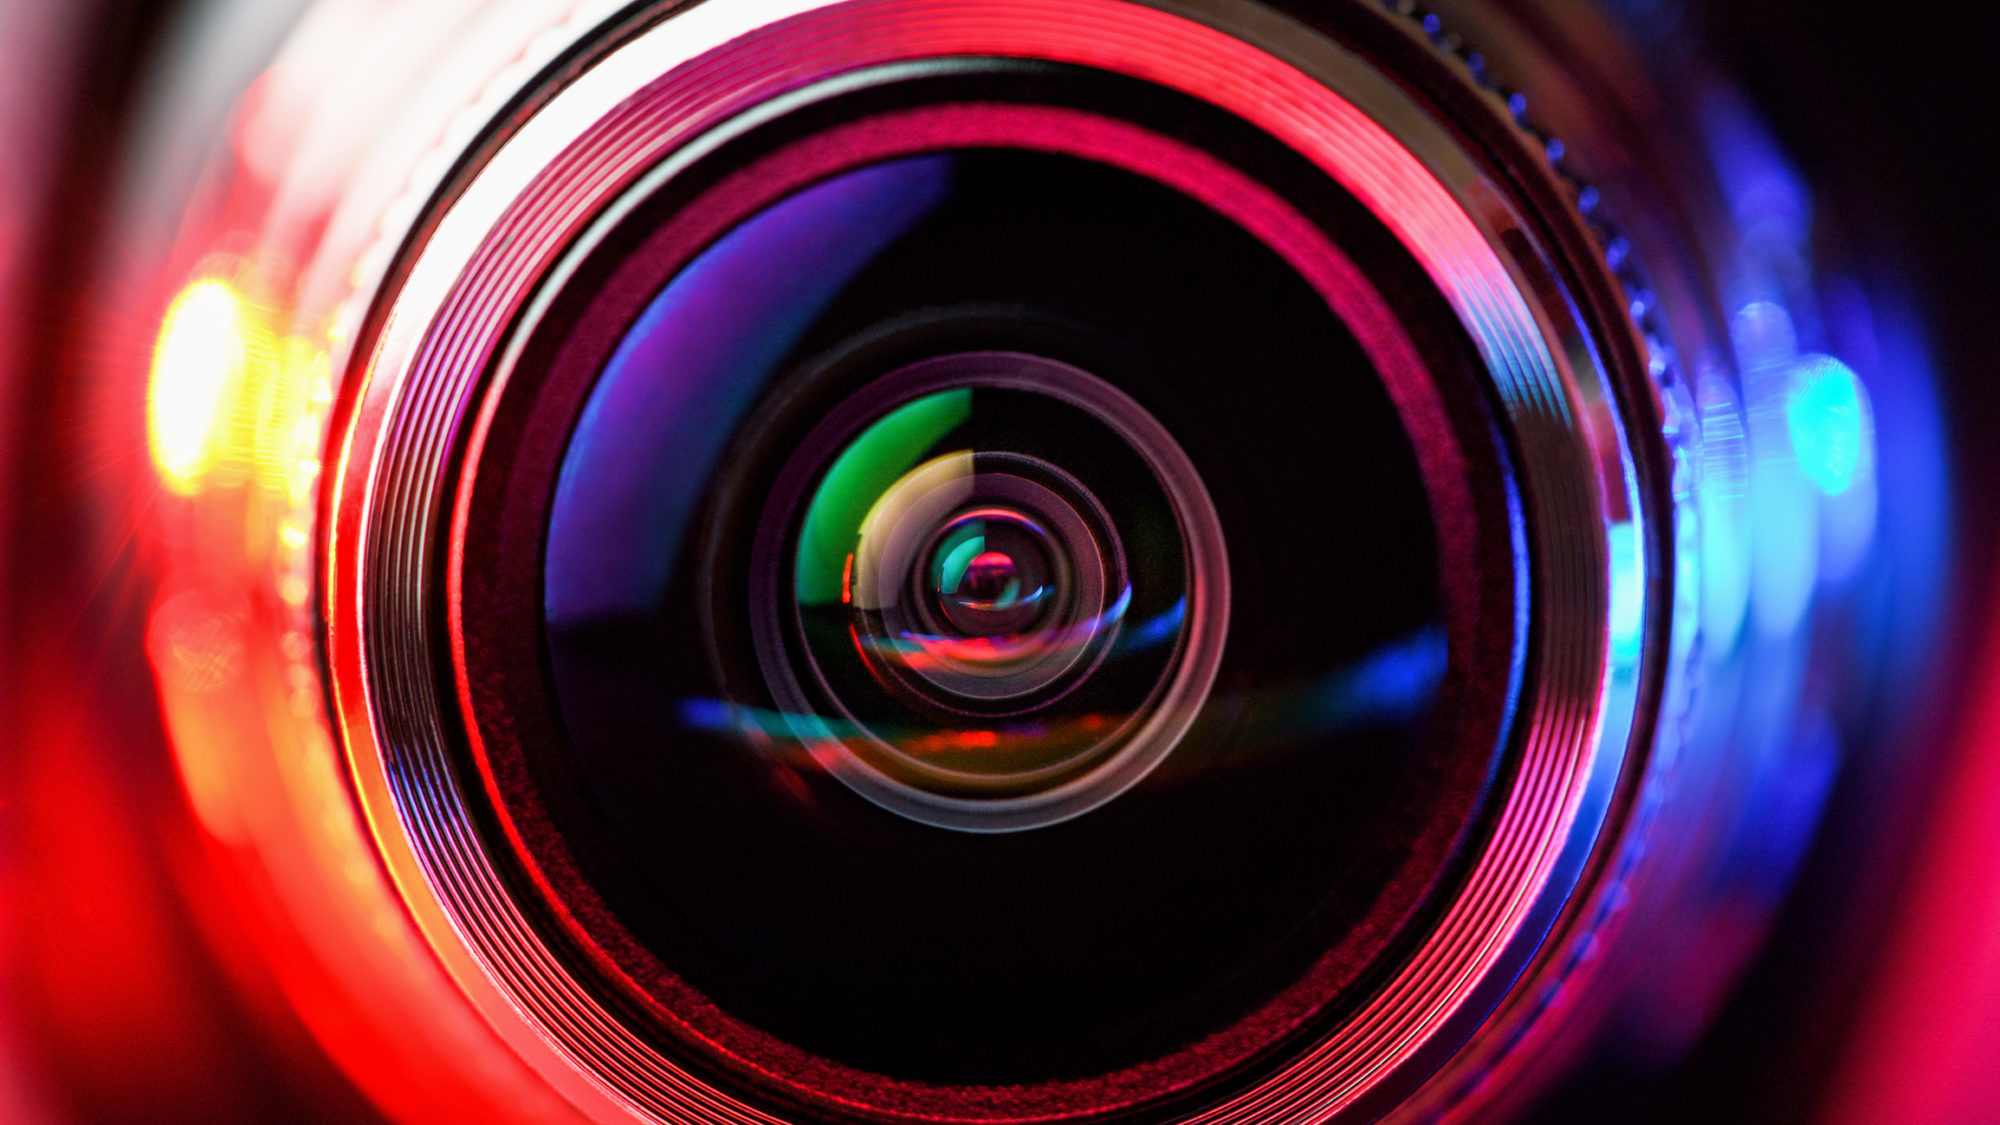 Camera lens with red and blue backlight, Macro photography lenses, Horizontal photography